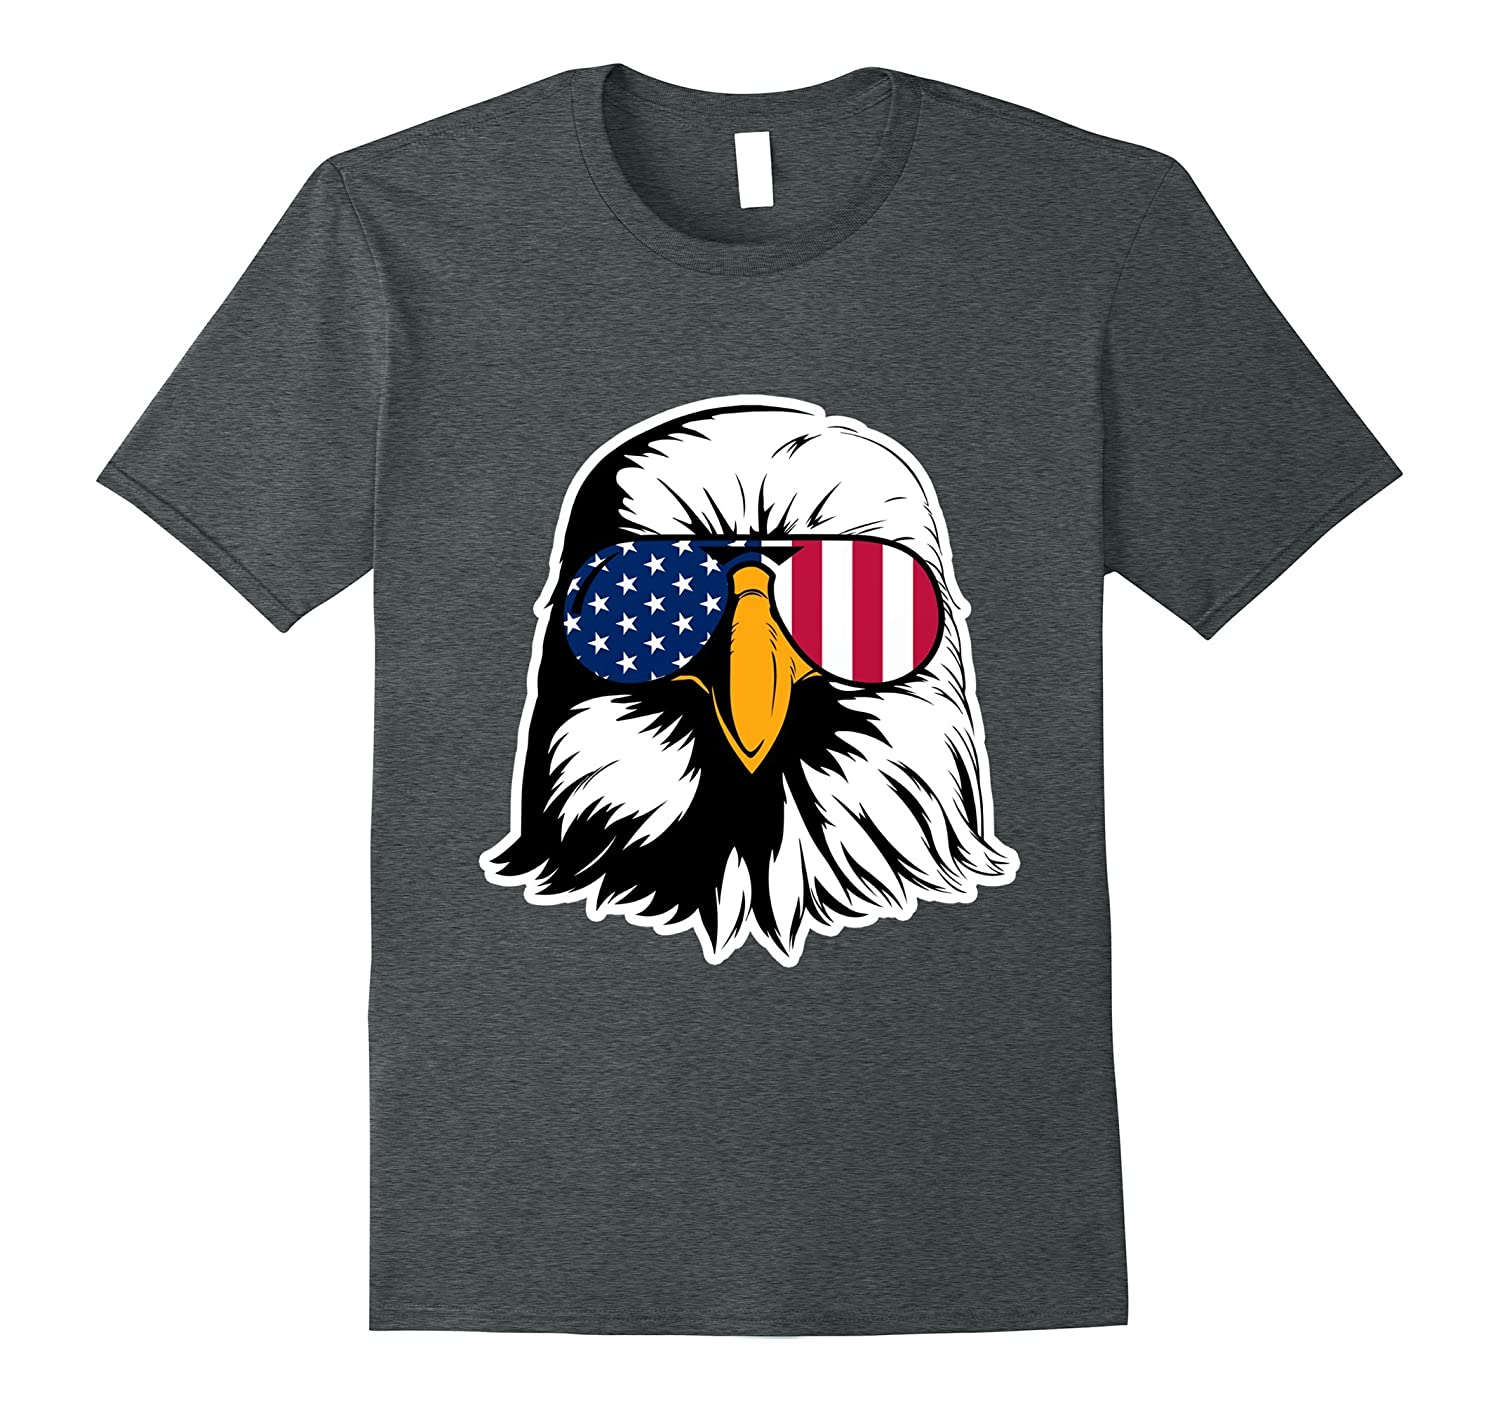 4th July American eagle Tee - Independence Day 2017 t-shirt-Art